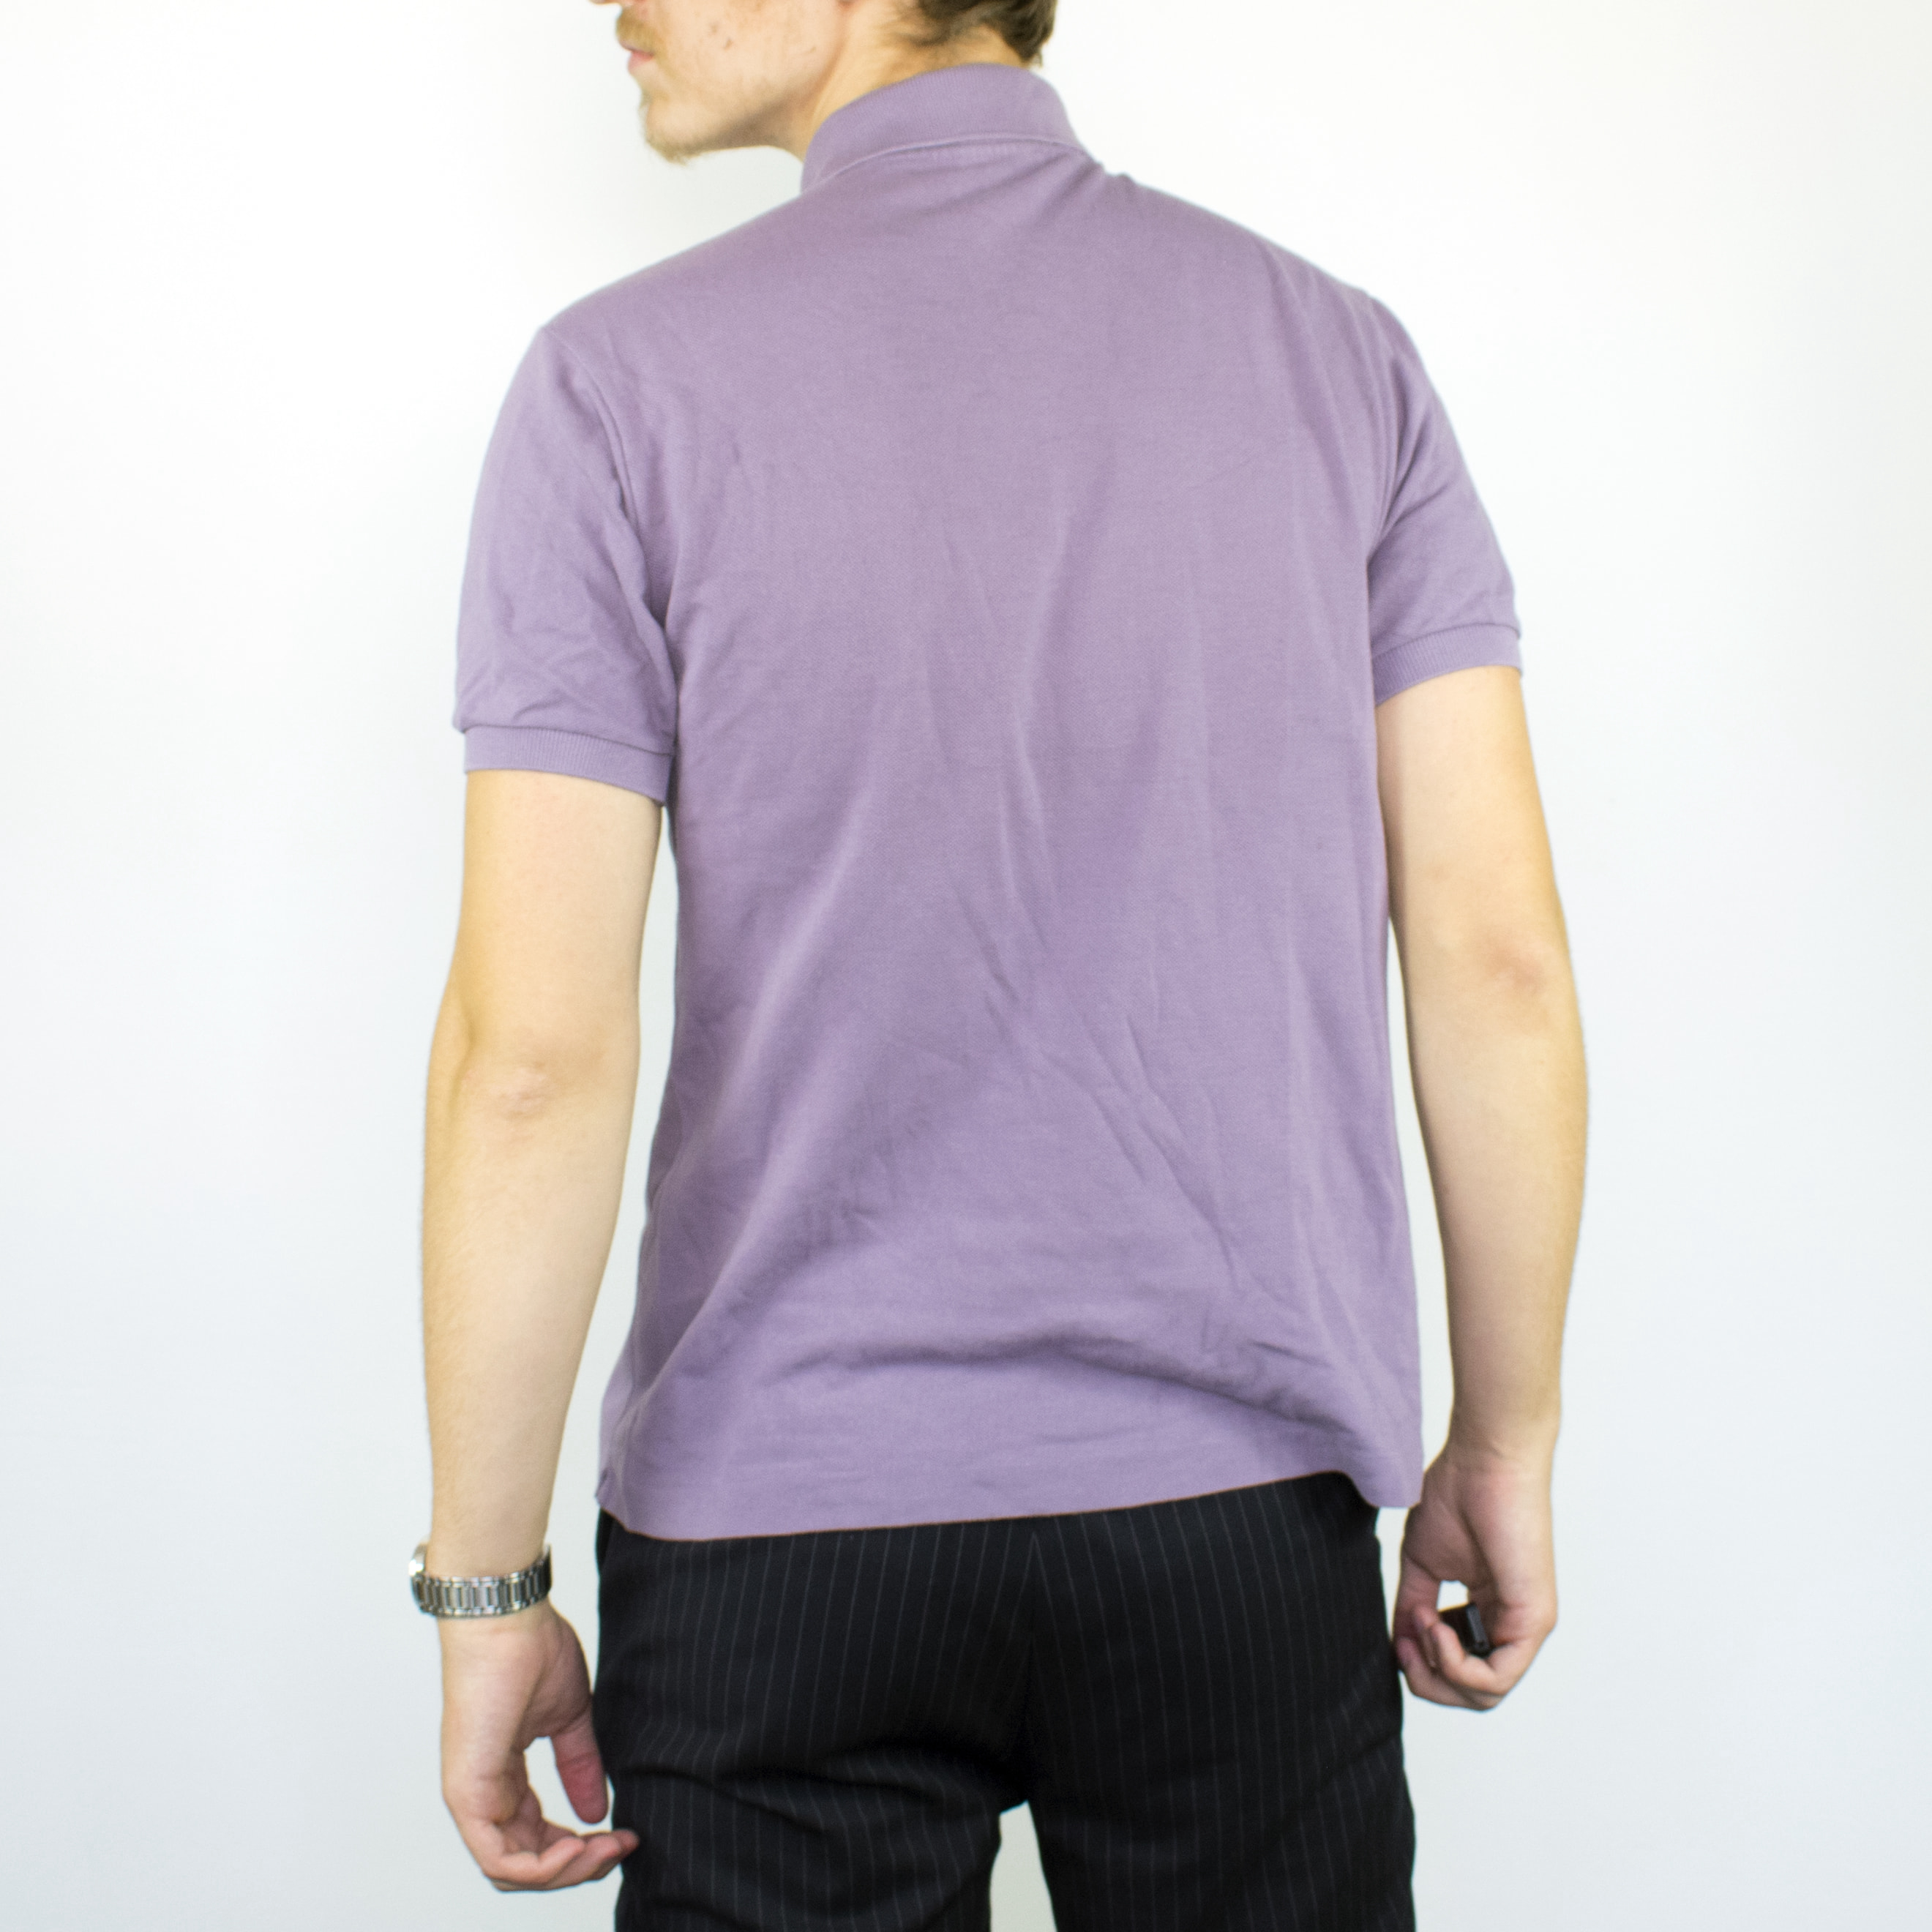 Unisex Vintage Lacoste polo shirt in purple has a small logo on the front